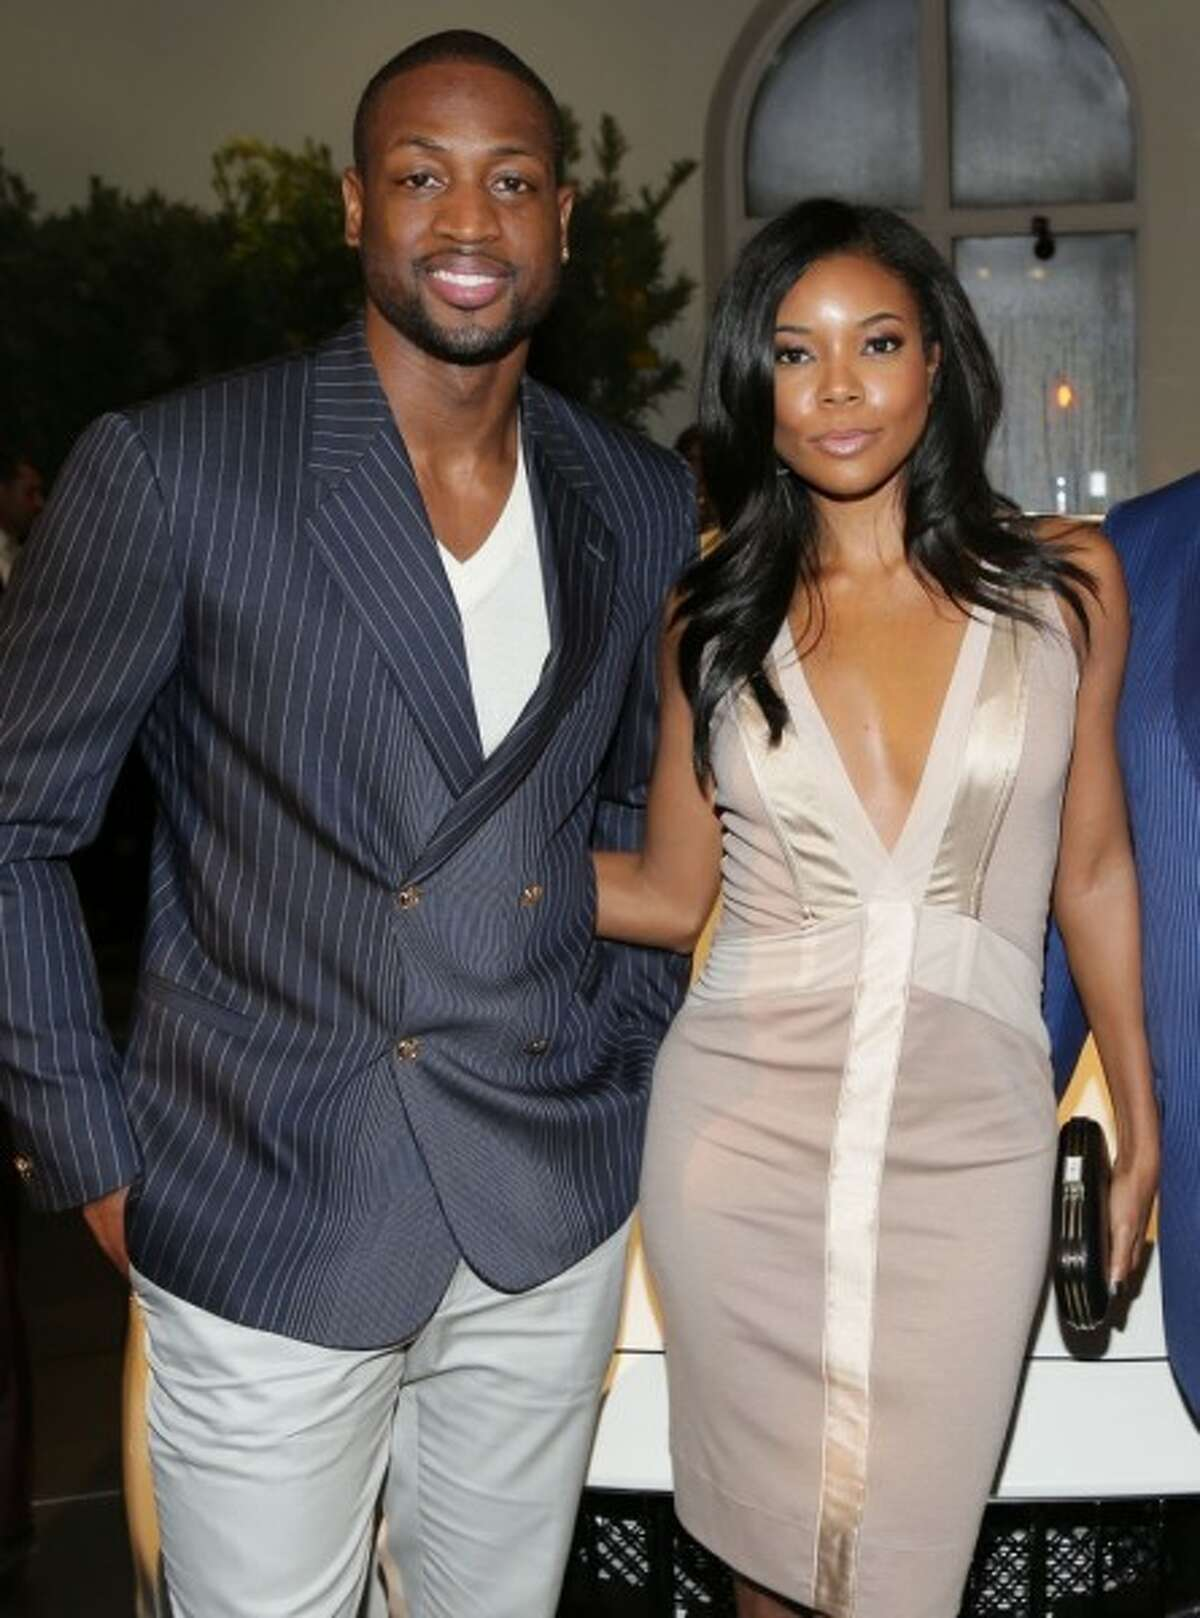 """Gabrielle Union, NBA Heat star Dwyane Wade's actress wife took exception to TNT analyst Charles Barkley saying her husband didn't deserve to be an all-star in 2015. She dissed Barkley with a rather strong Twitter burn, pointing out his lack of championships as a player: """"Forgive Charles. .. Kenny Smith is a 2x champion & his opinion is most sound... it's like me talkin bout Meryl Streep but I ain't won nuthin."""""""